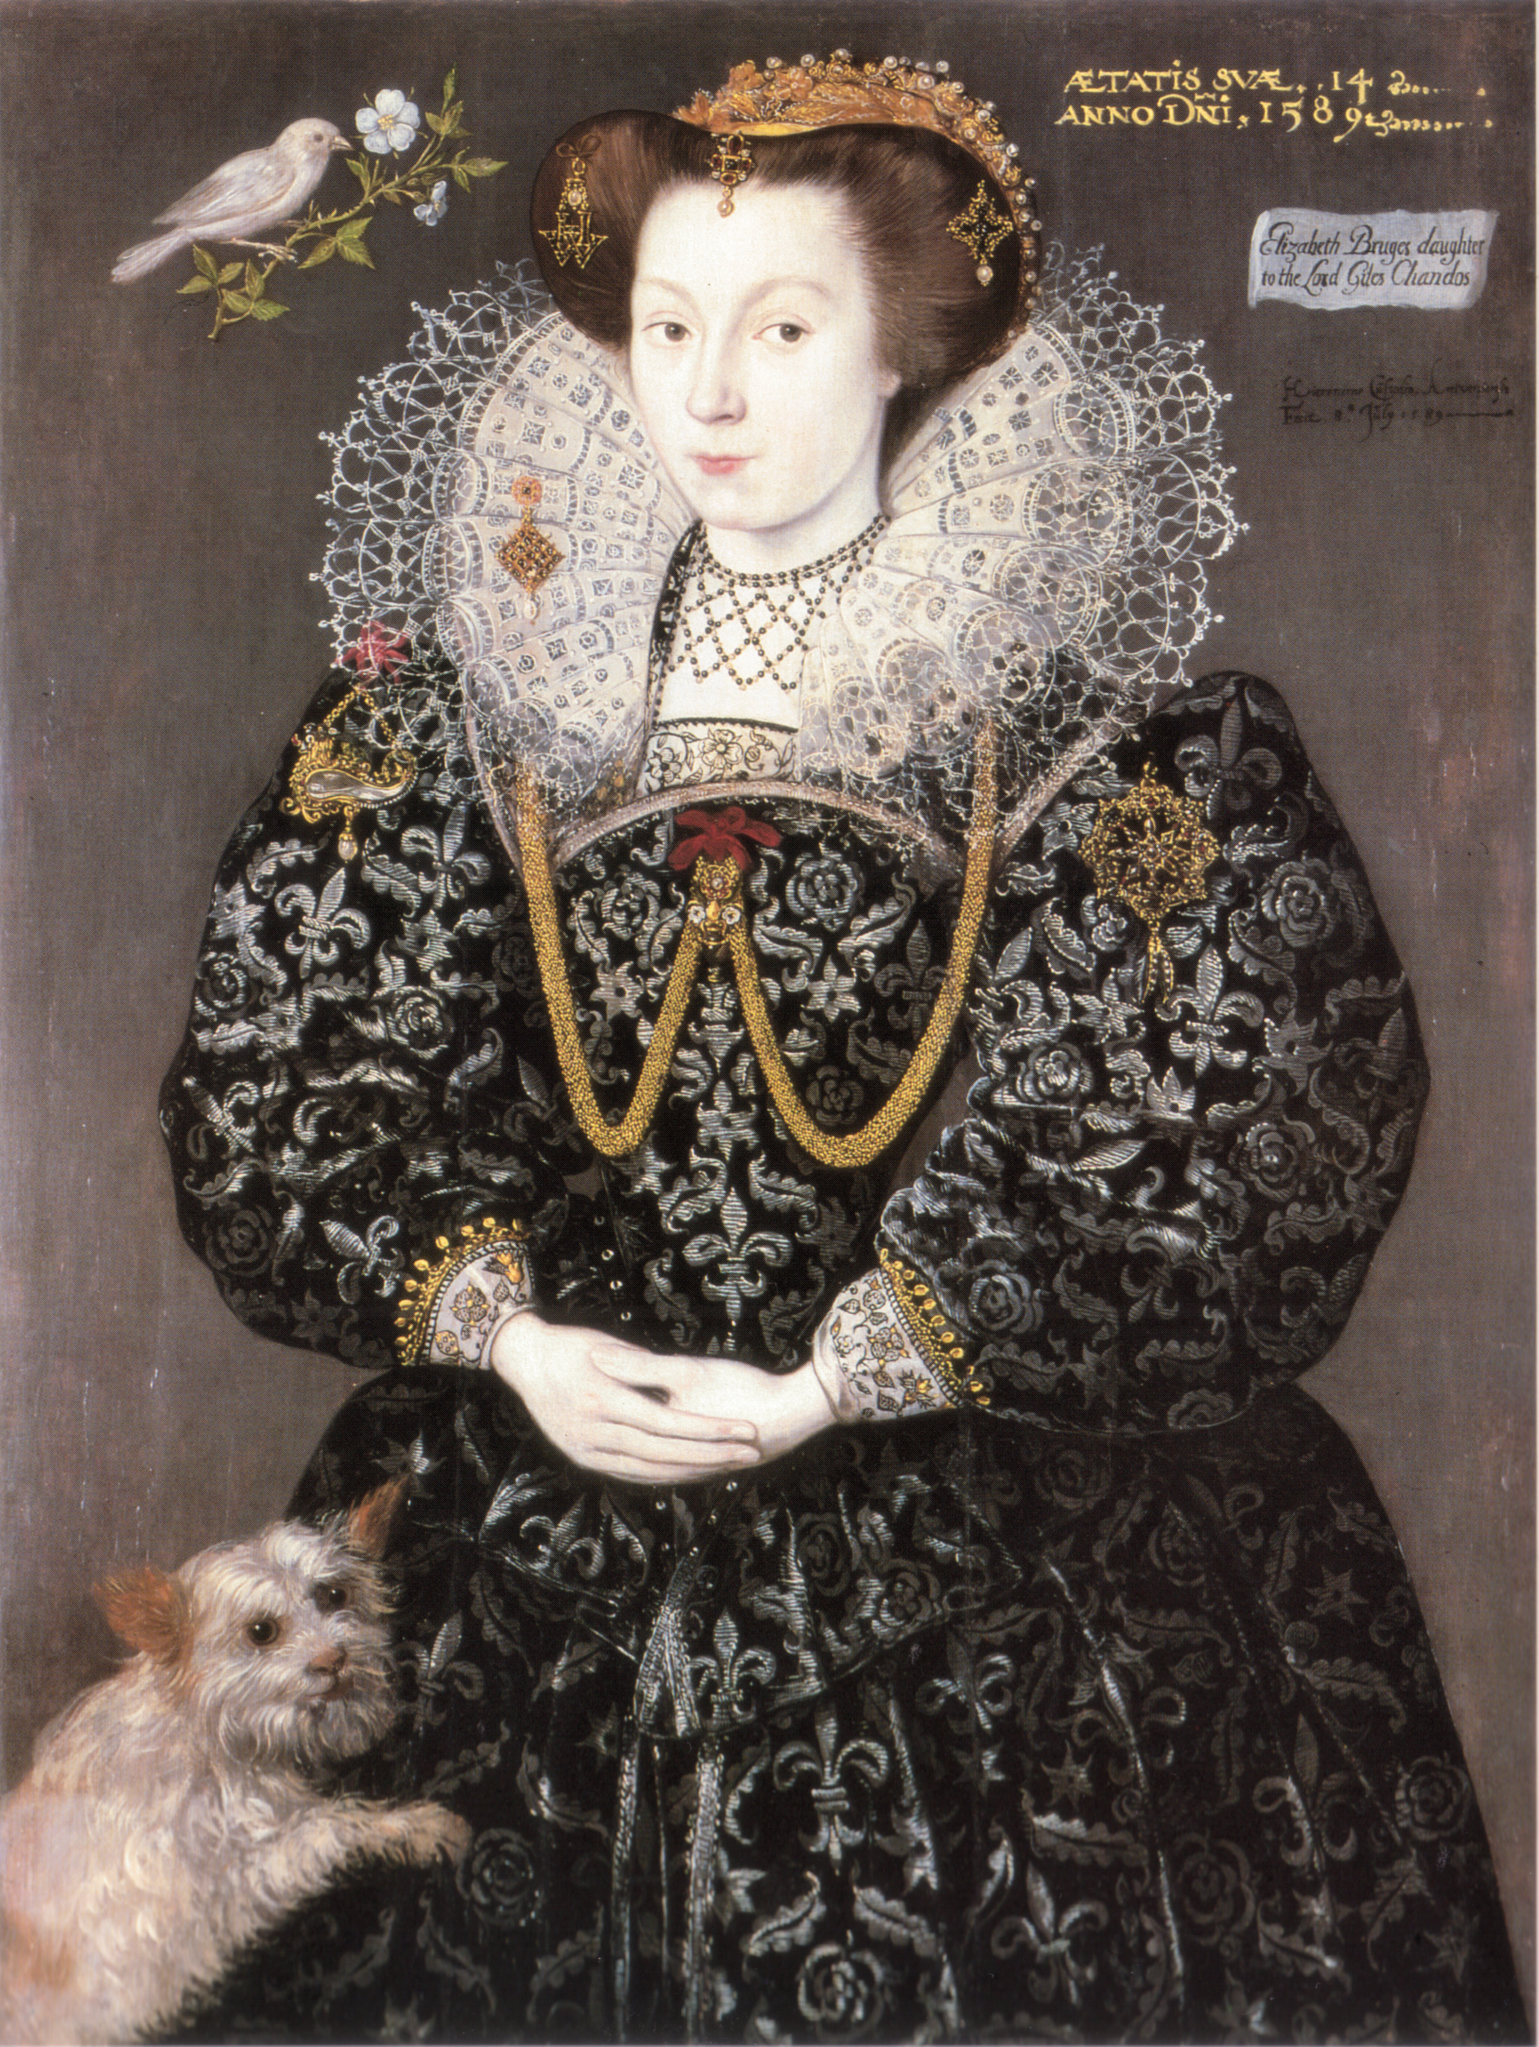 a biography of elizabeth i the queen of england Elizabeth i, bynames the virgin queen and good queen bess, (born september 7, 1533, greenwich, near london, england—died march 24, 1603, richmond, surrey), queen of england (1558–1603) during a period, often called the elizabethan age, when england asserted itself vigorously as a major european power in politics, commerce, and the arts.